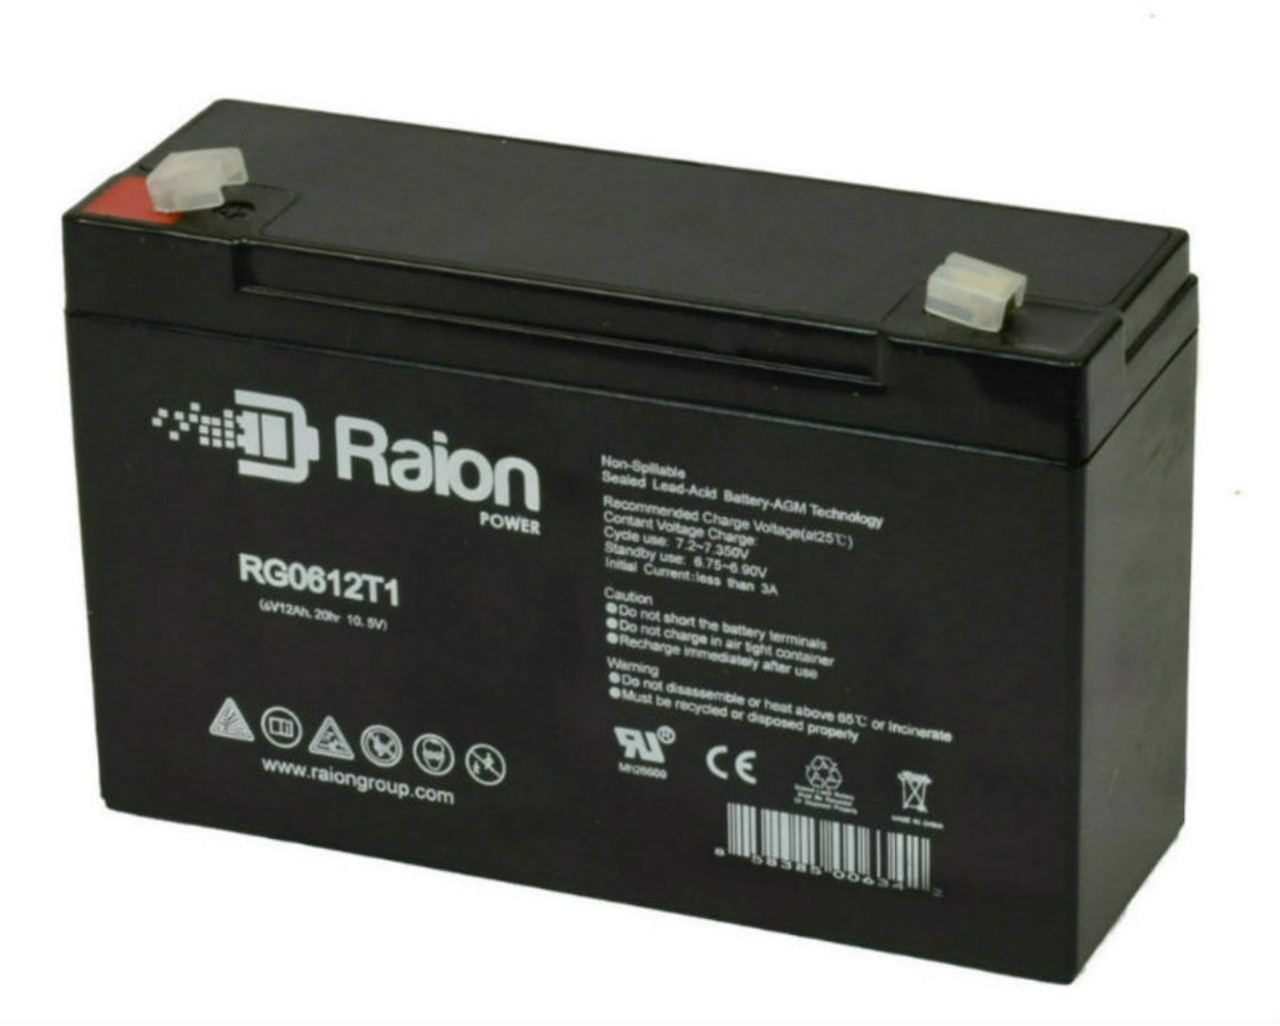 Raion Power RG06120T1 Replacement Battery Pack for Chloride 1001136--Retrofit emergency light